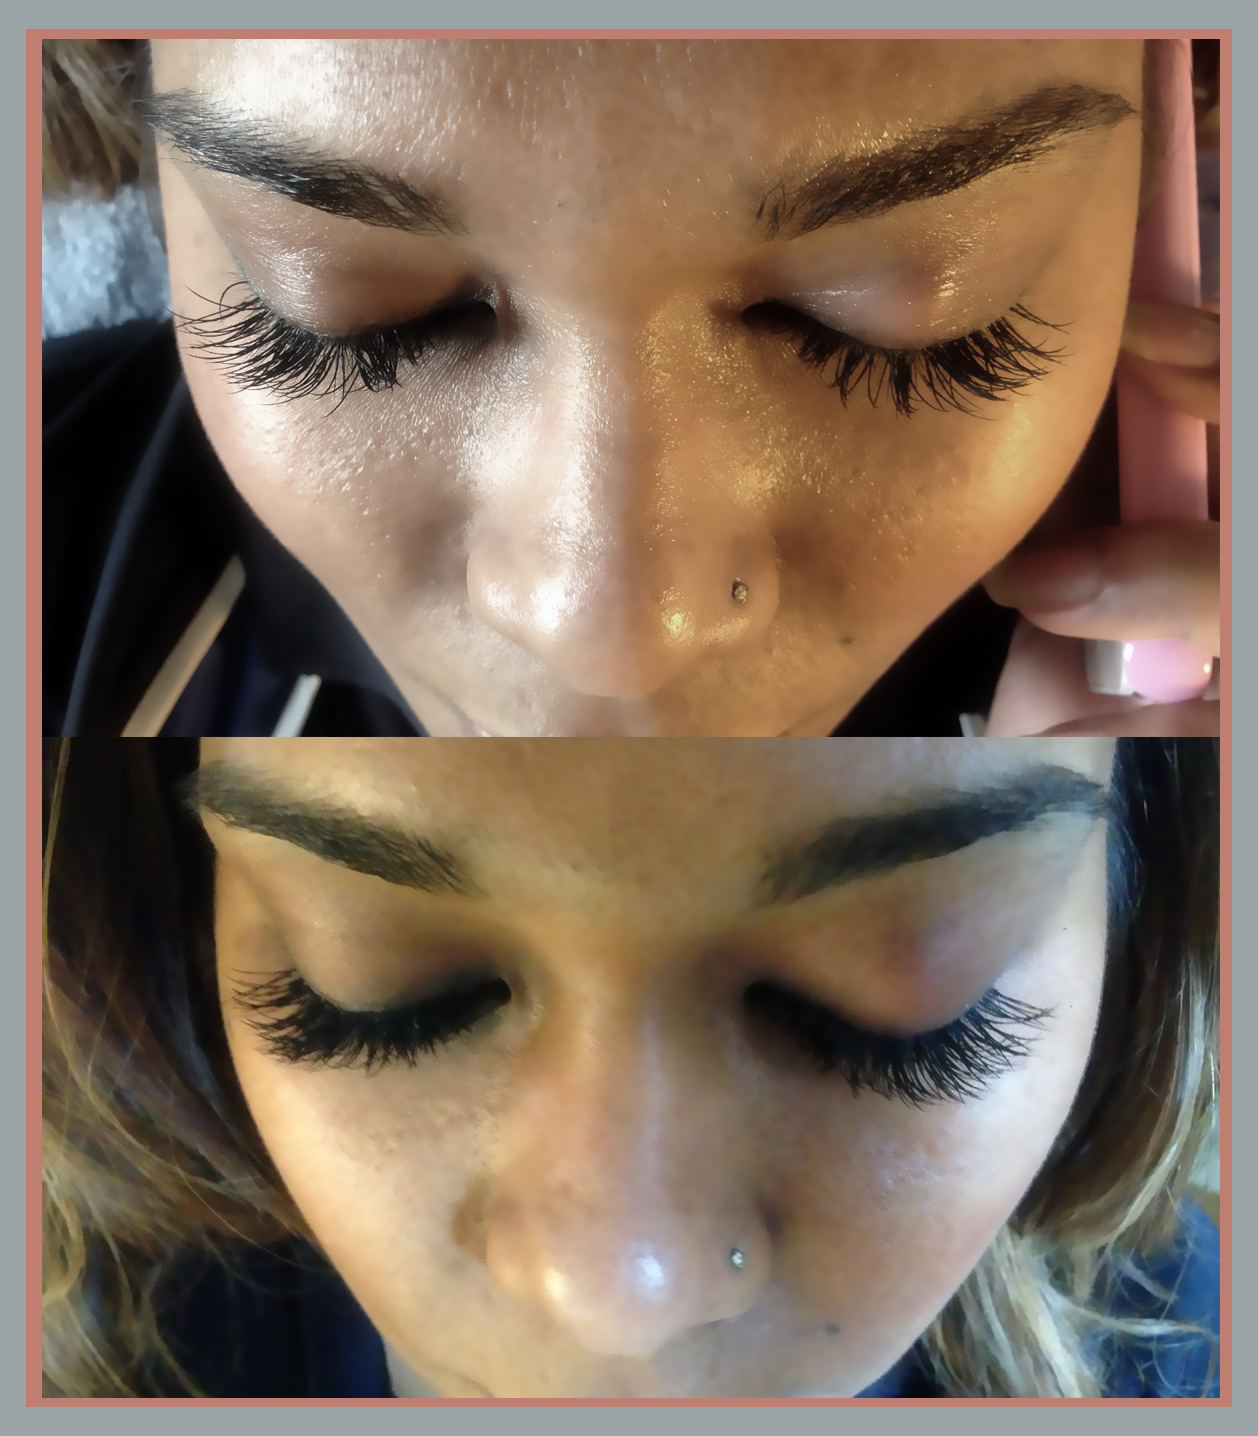 Luxe Lash Top Up Bad Eyelash Extension From Another Salon To Fix